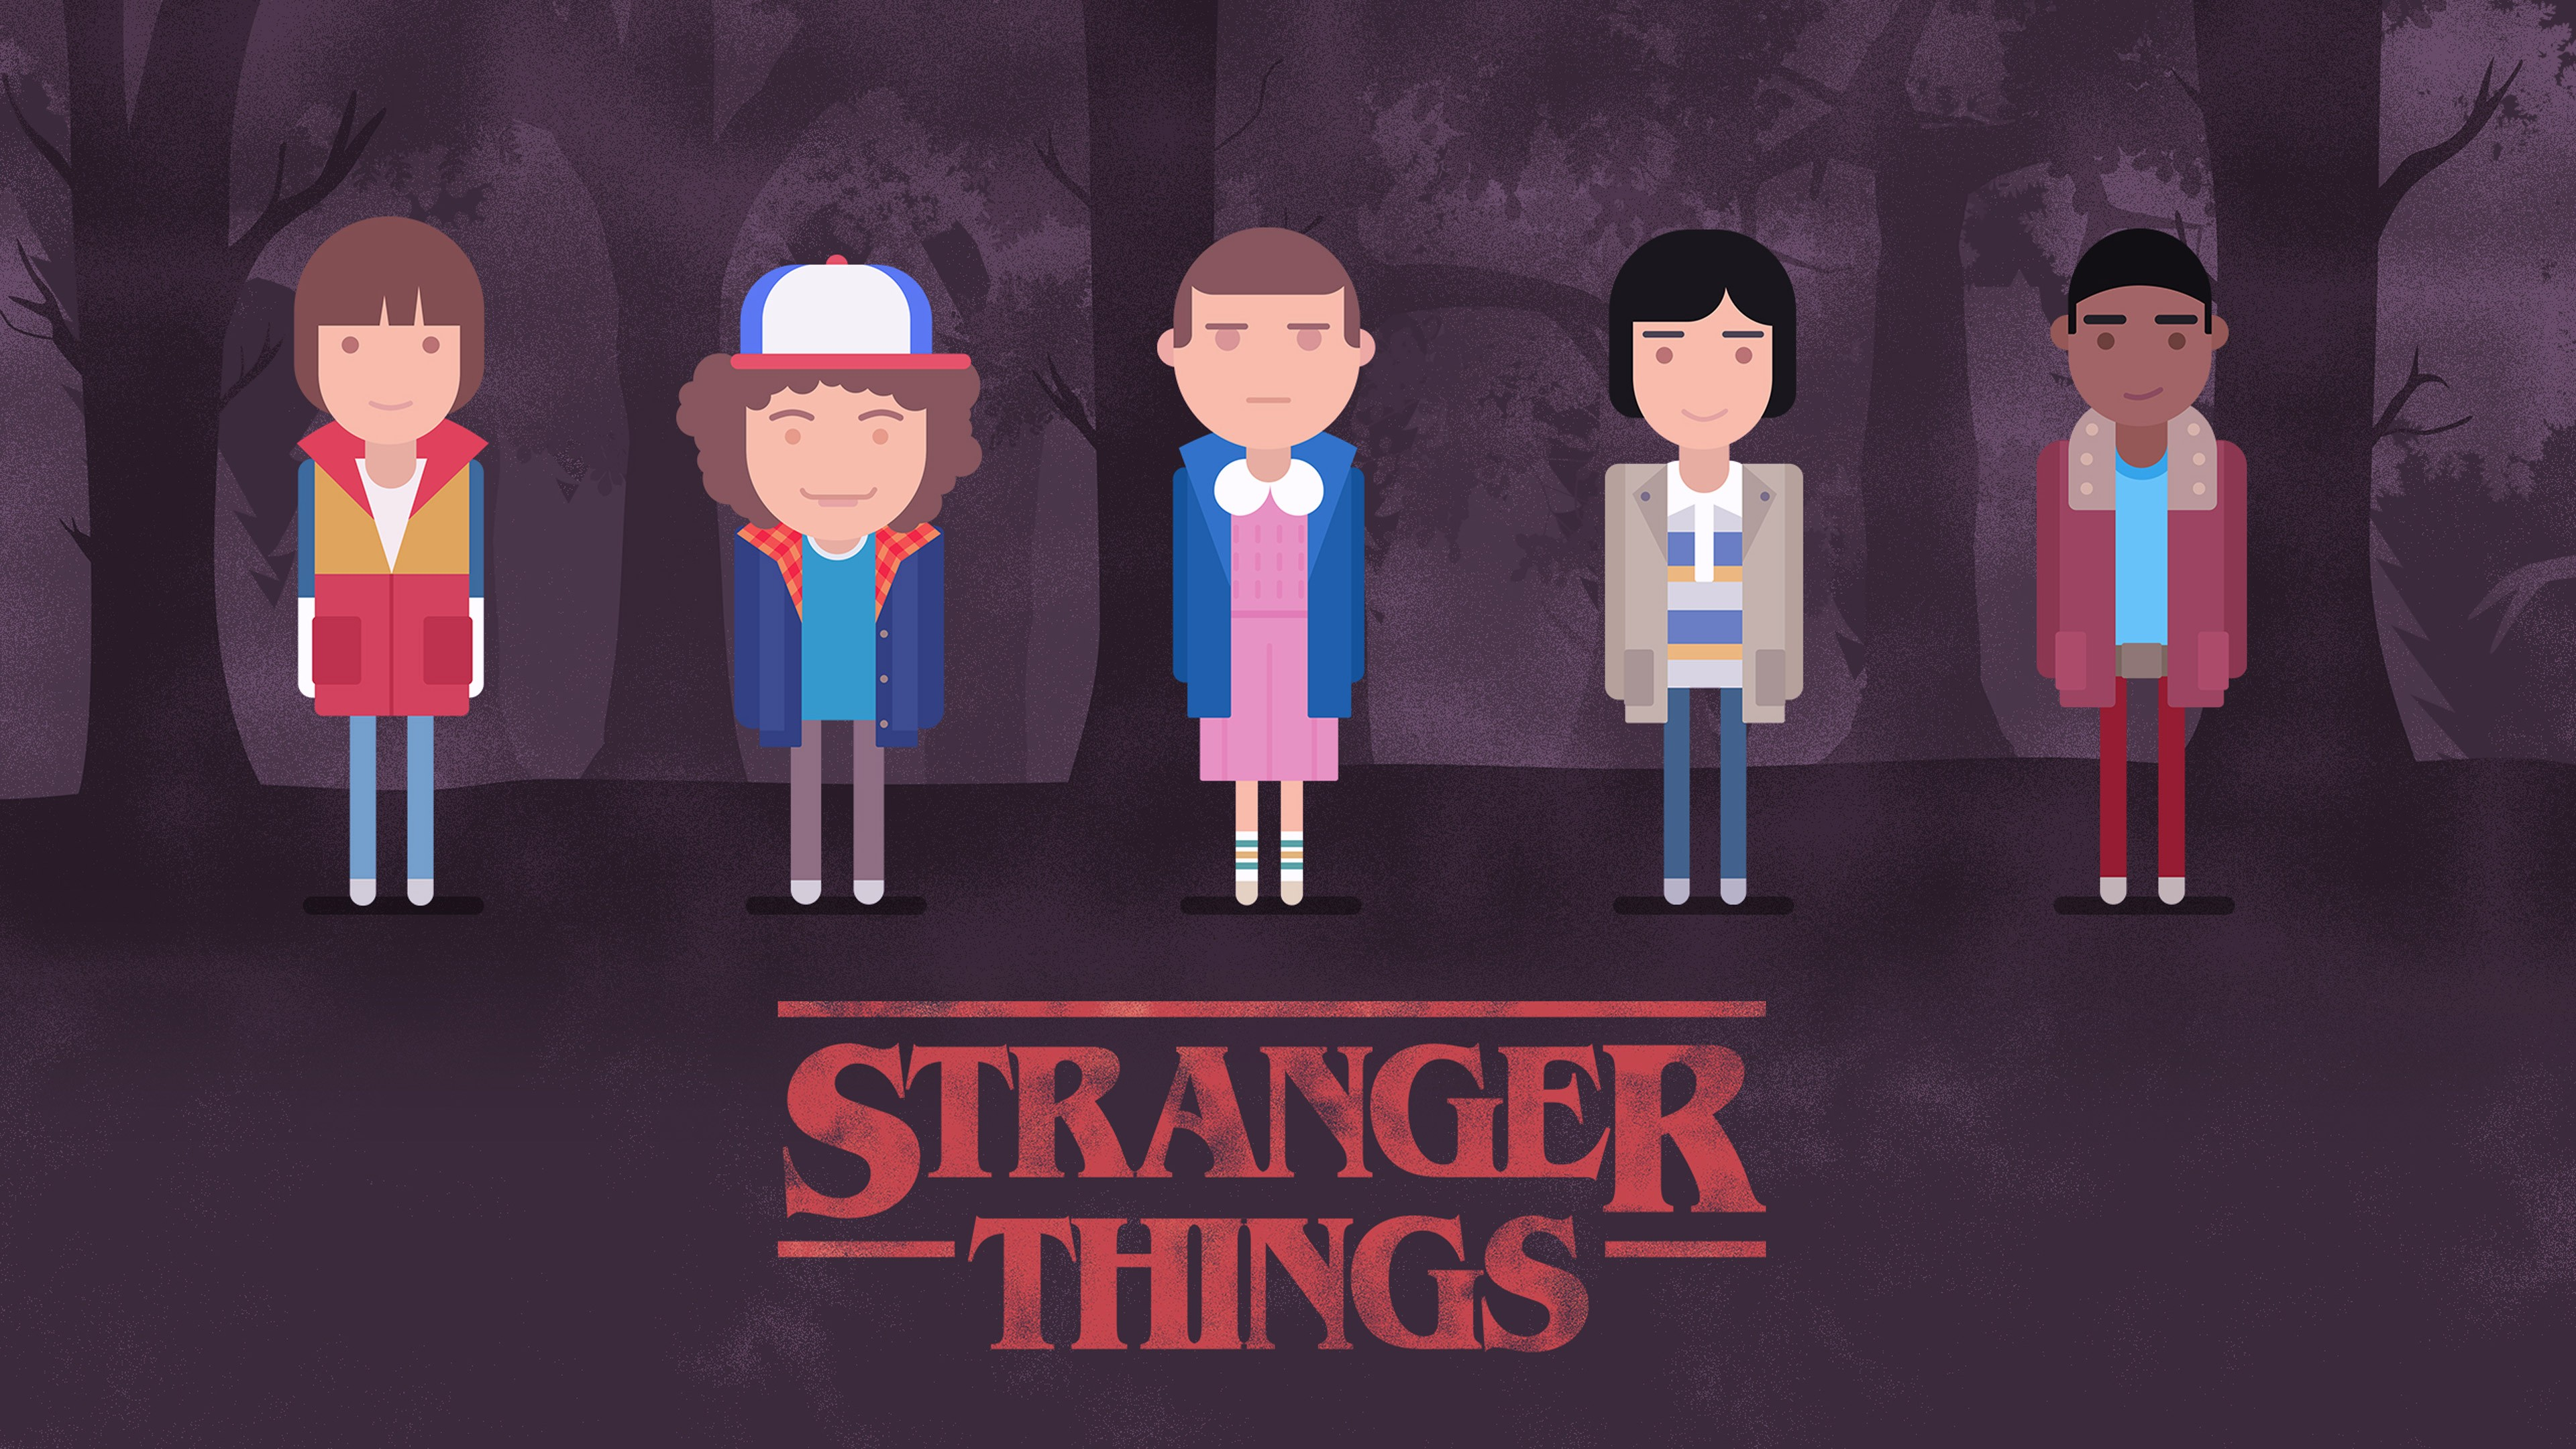 Wallpaper Stranger Things Season 2 Tv Series Art Poster 4k